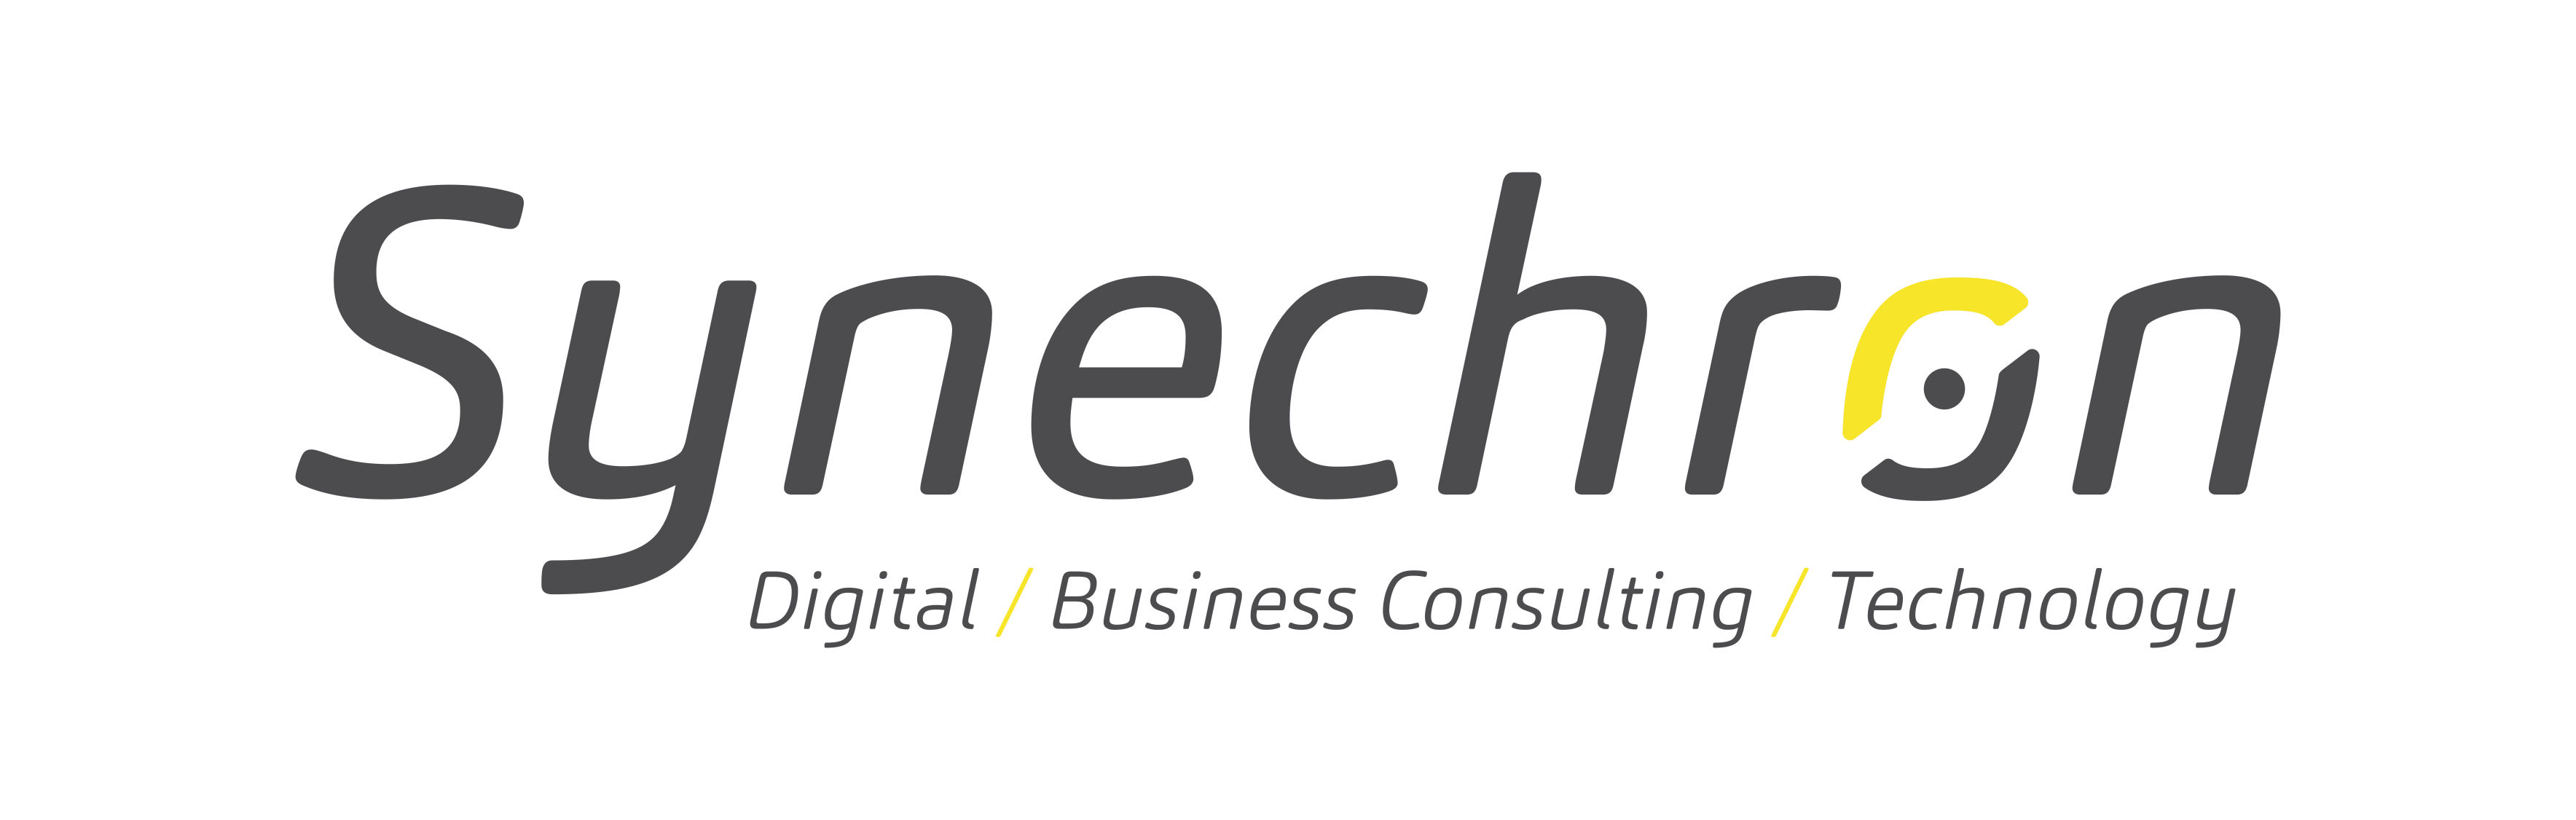 Synechron signs a Calypso implementation deal with SIX Group, the financial services provider and Swiss Stock Exchange infrastructure operator